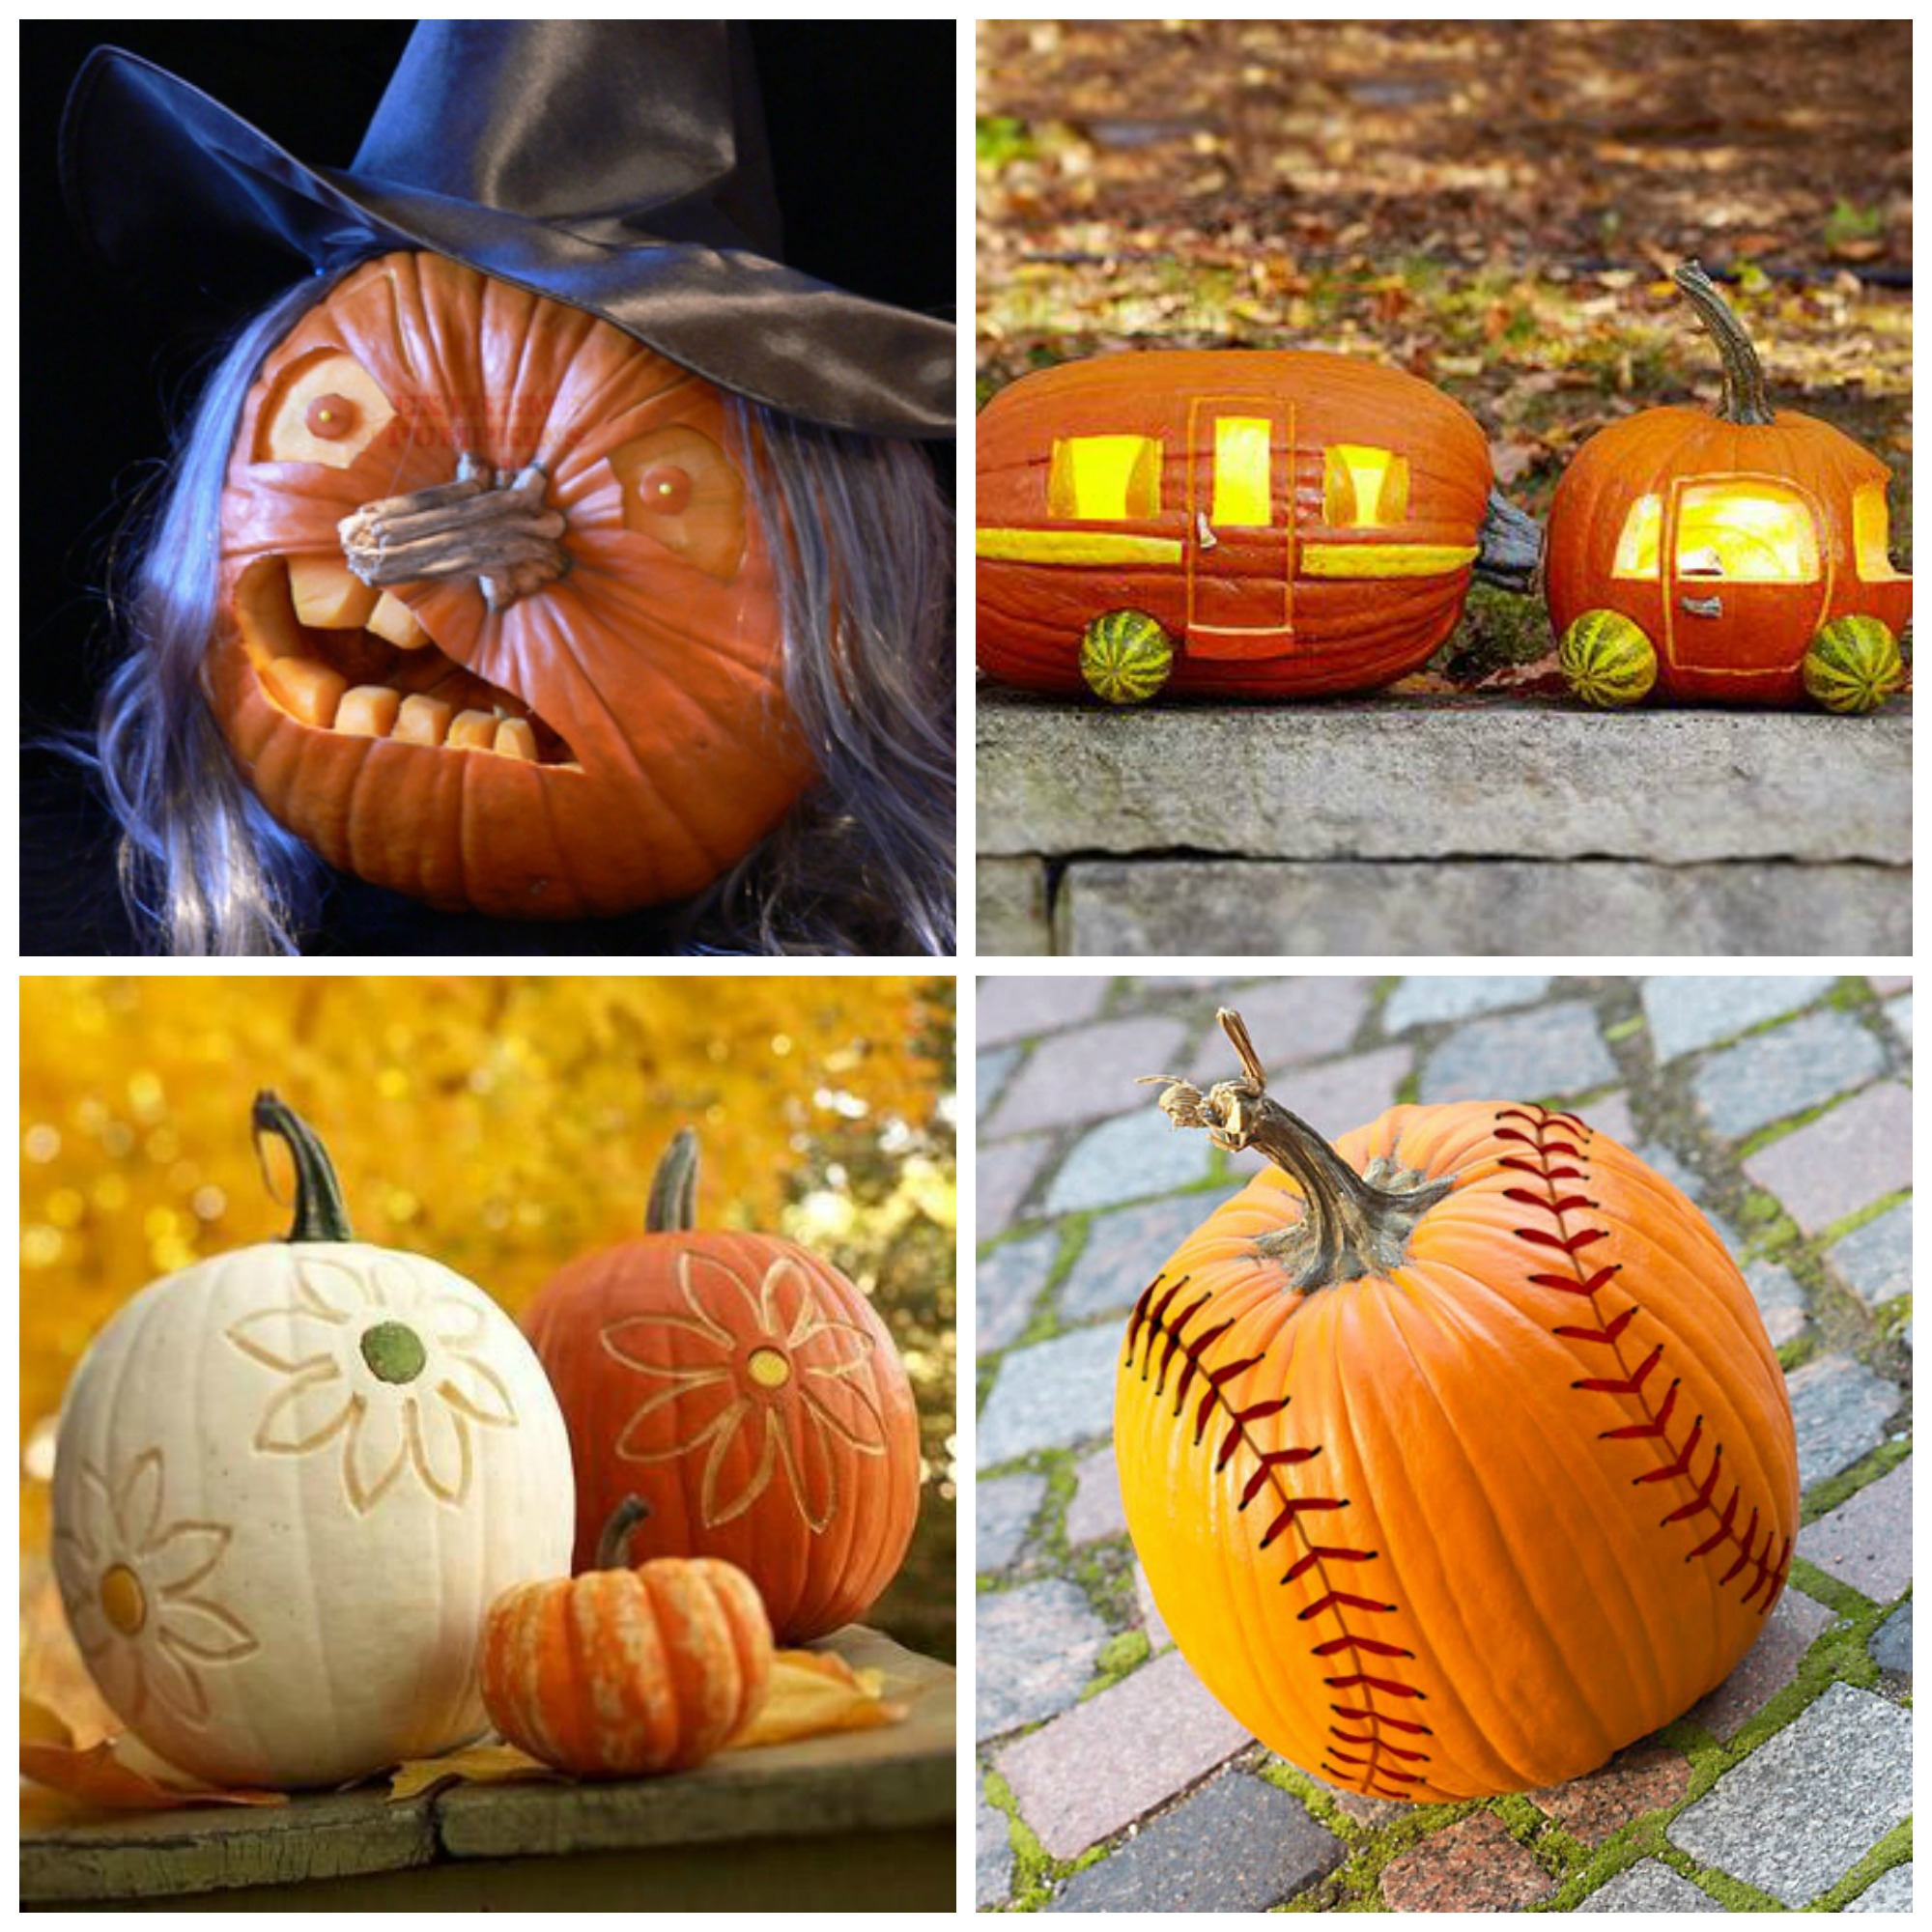 Pumpkin decorating ideas and my curated roundup